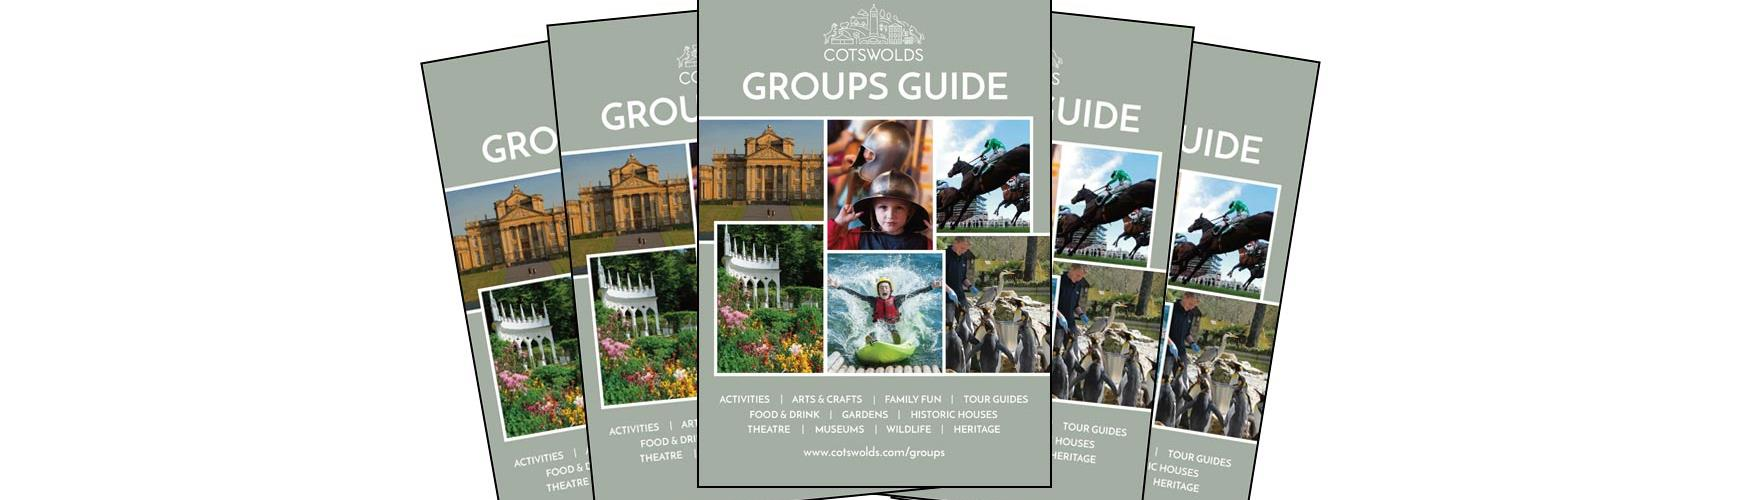 The Cotswolds Groups Guide